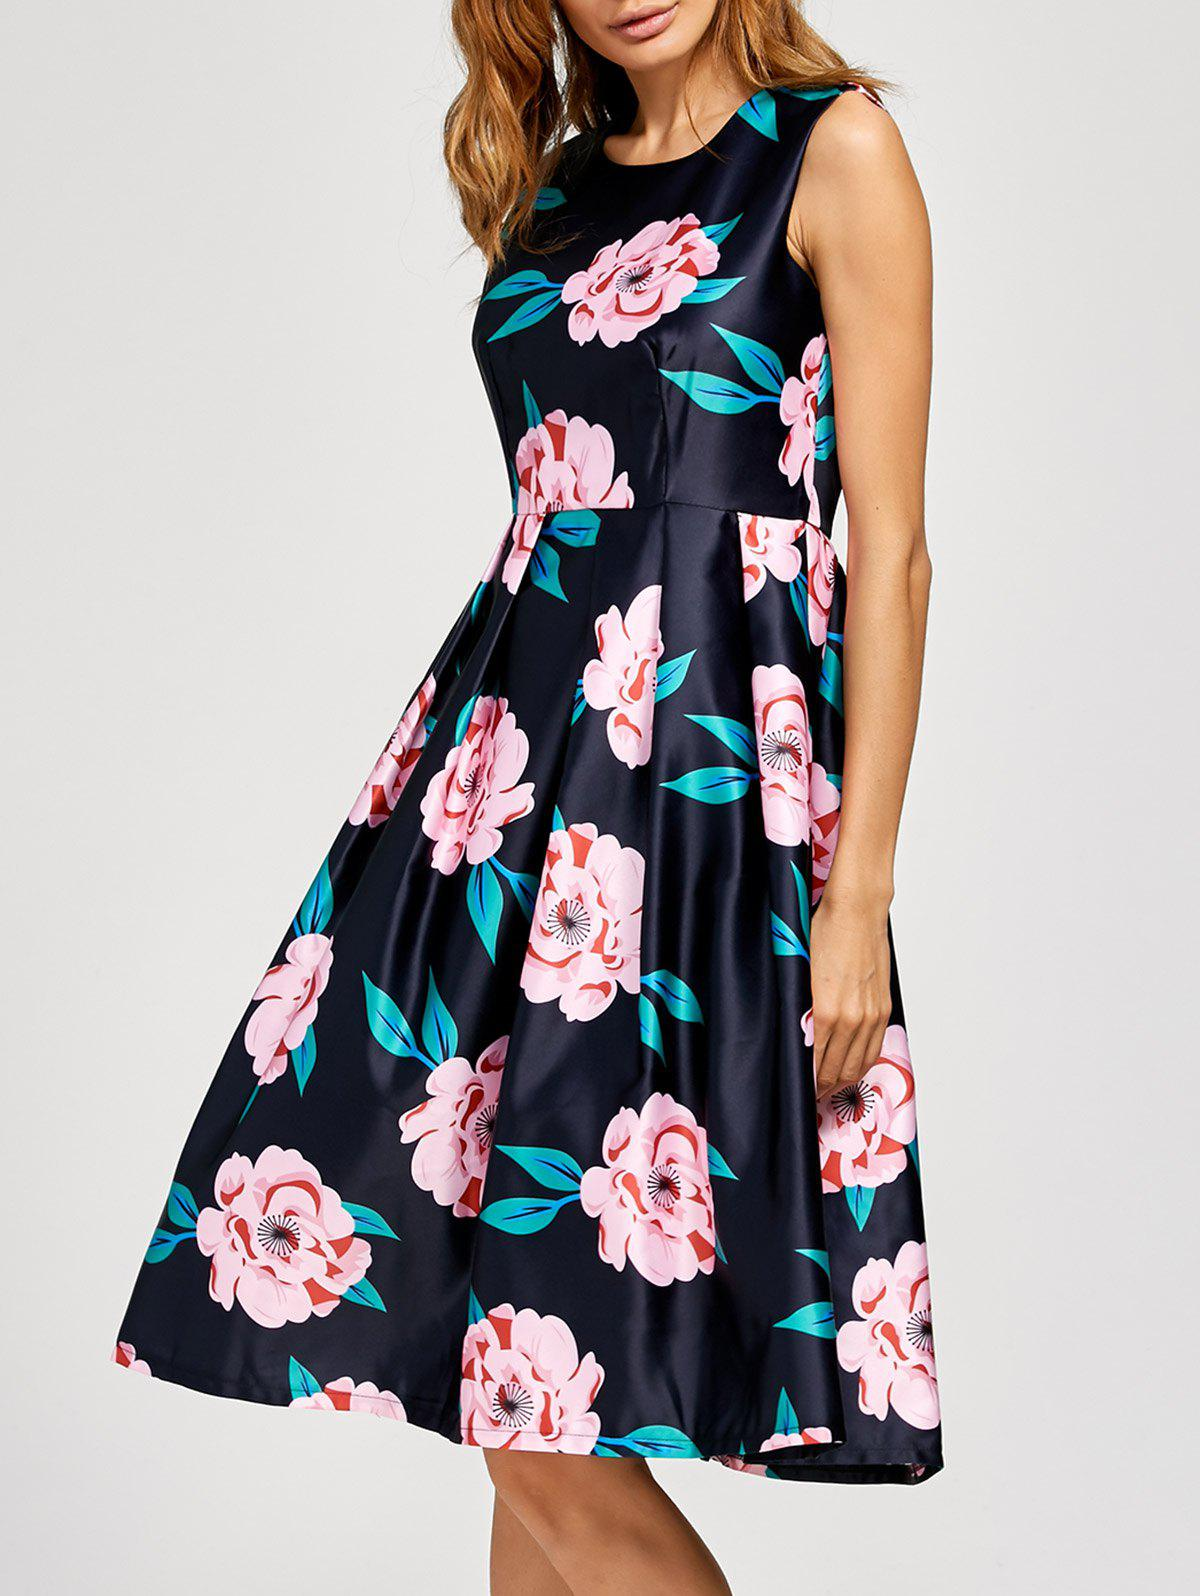 Hot Floral Fit And Flare Midi Dress